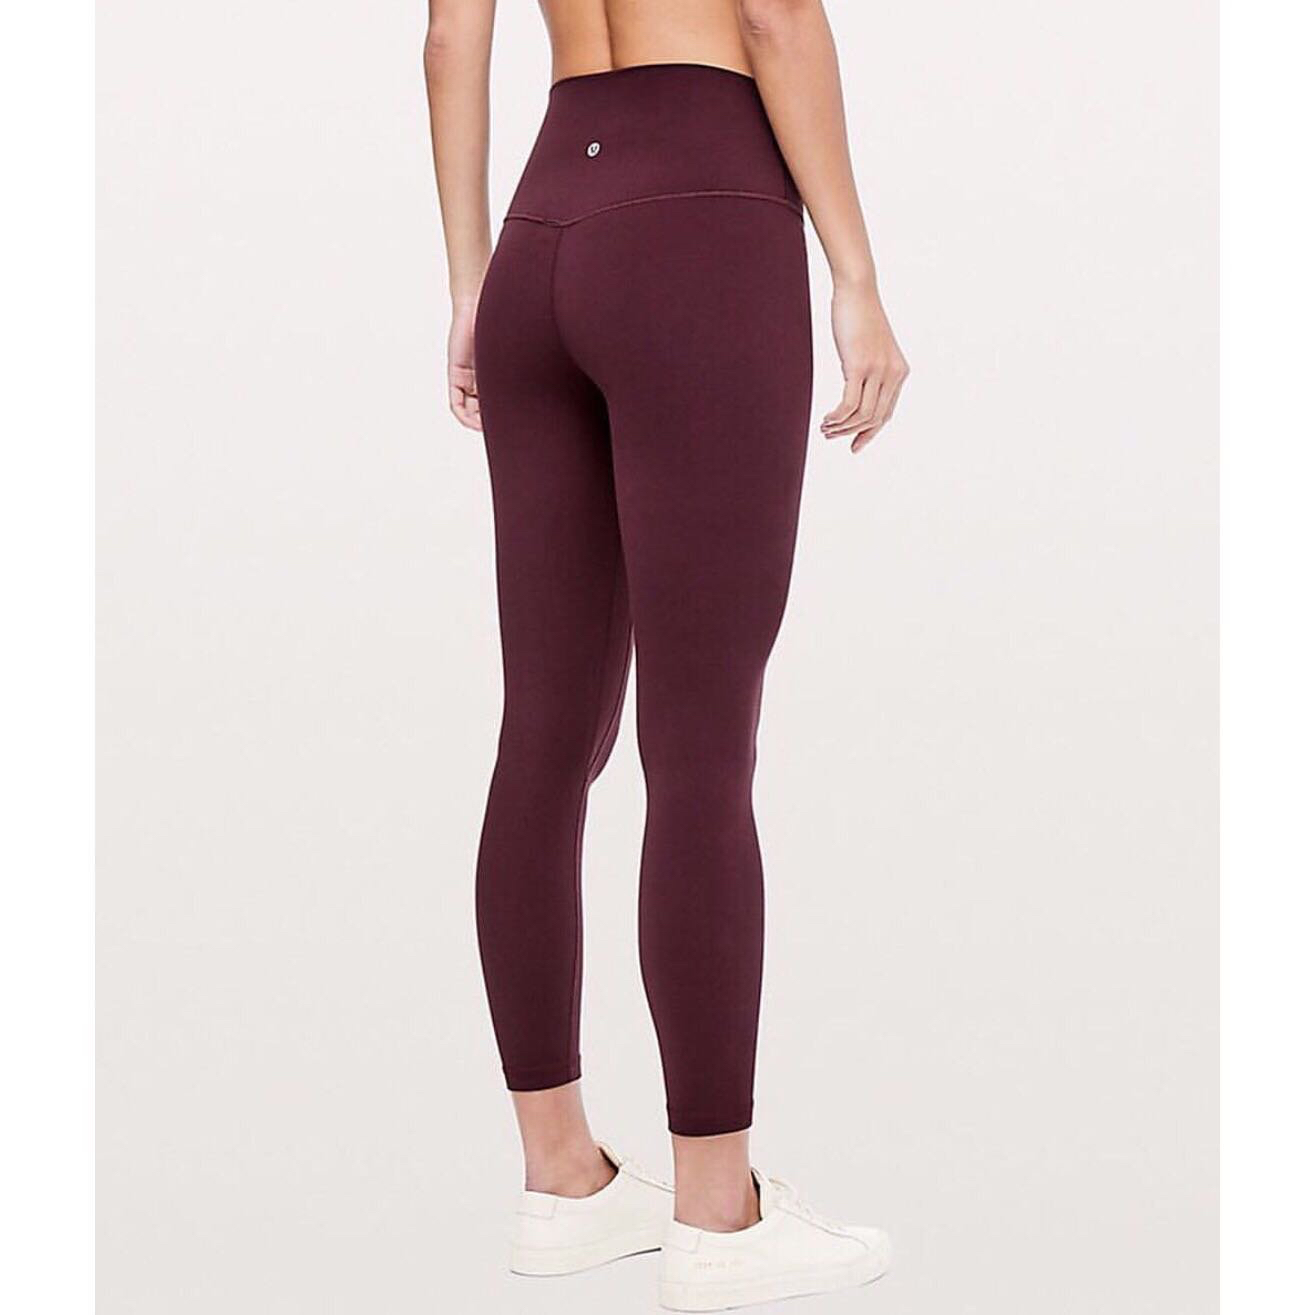 4bcdee9b64a7fd NEW Lululemon Workout Leggings in Maroon, Sports, Athletic & Sports  Clothing on Carousell